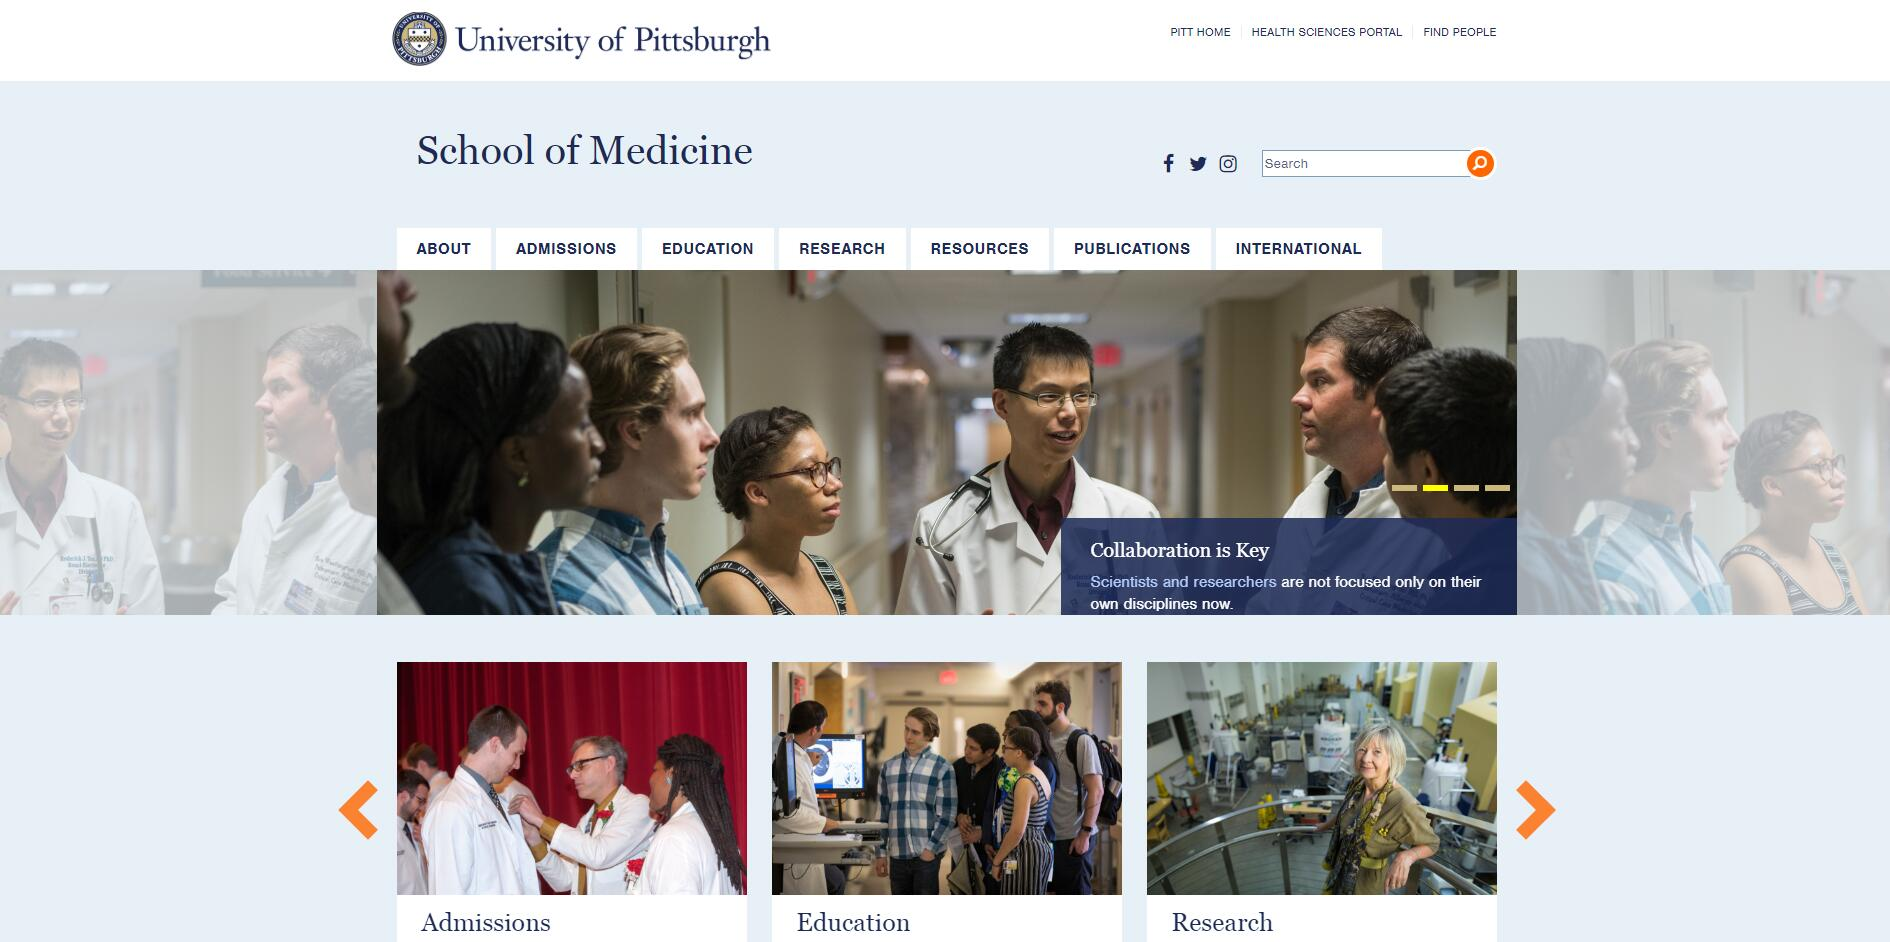 The School of Medicine at University of Pittsburgh